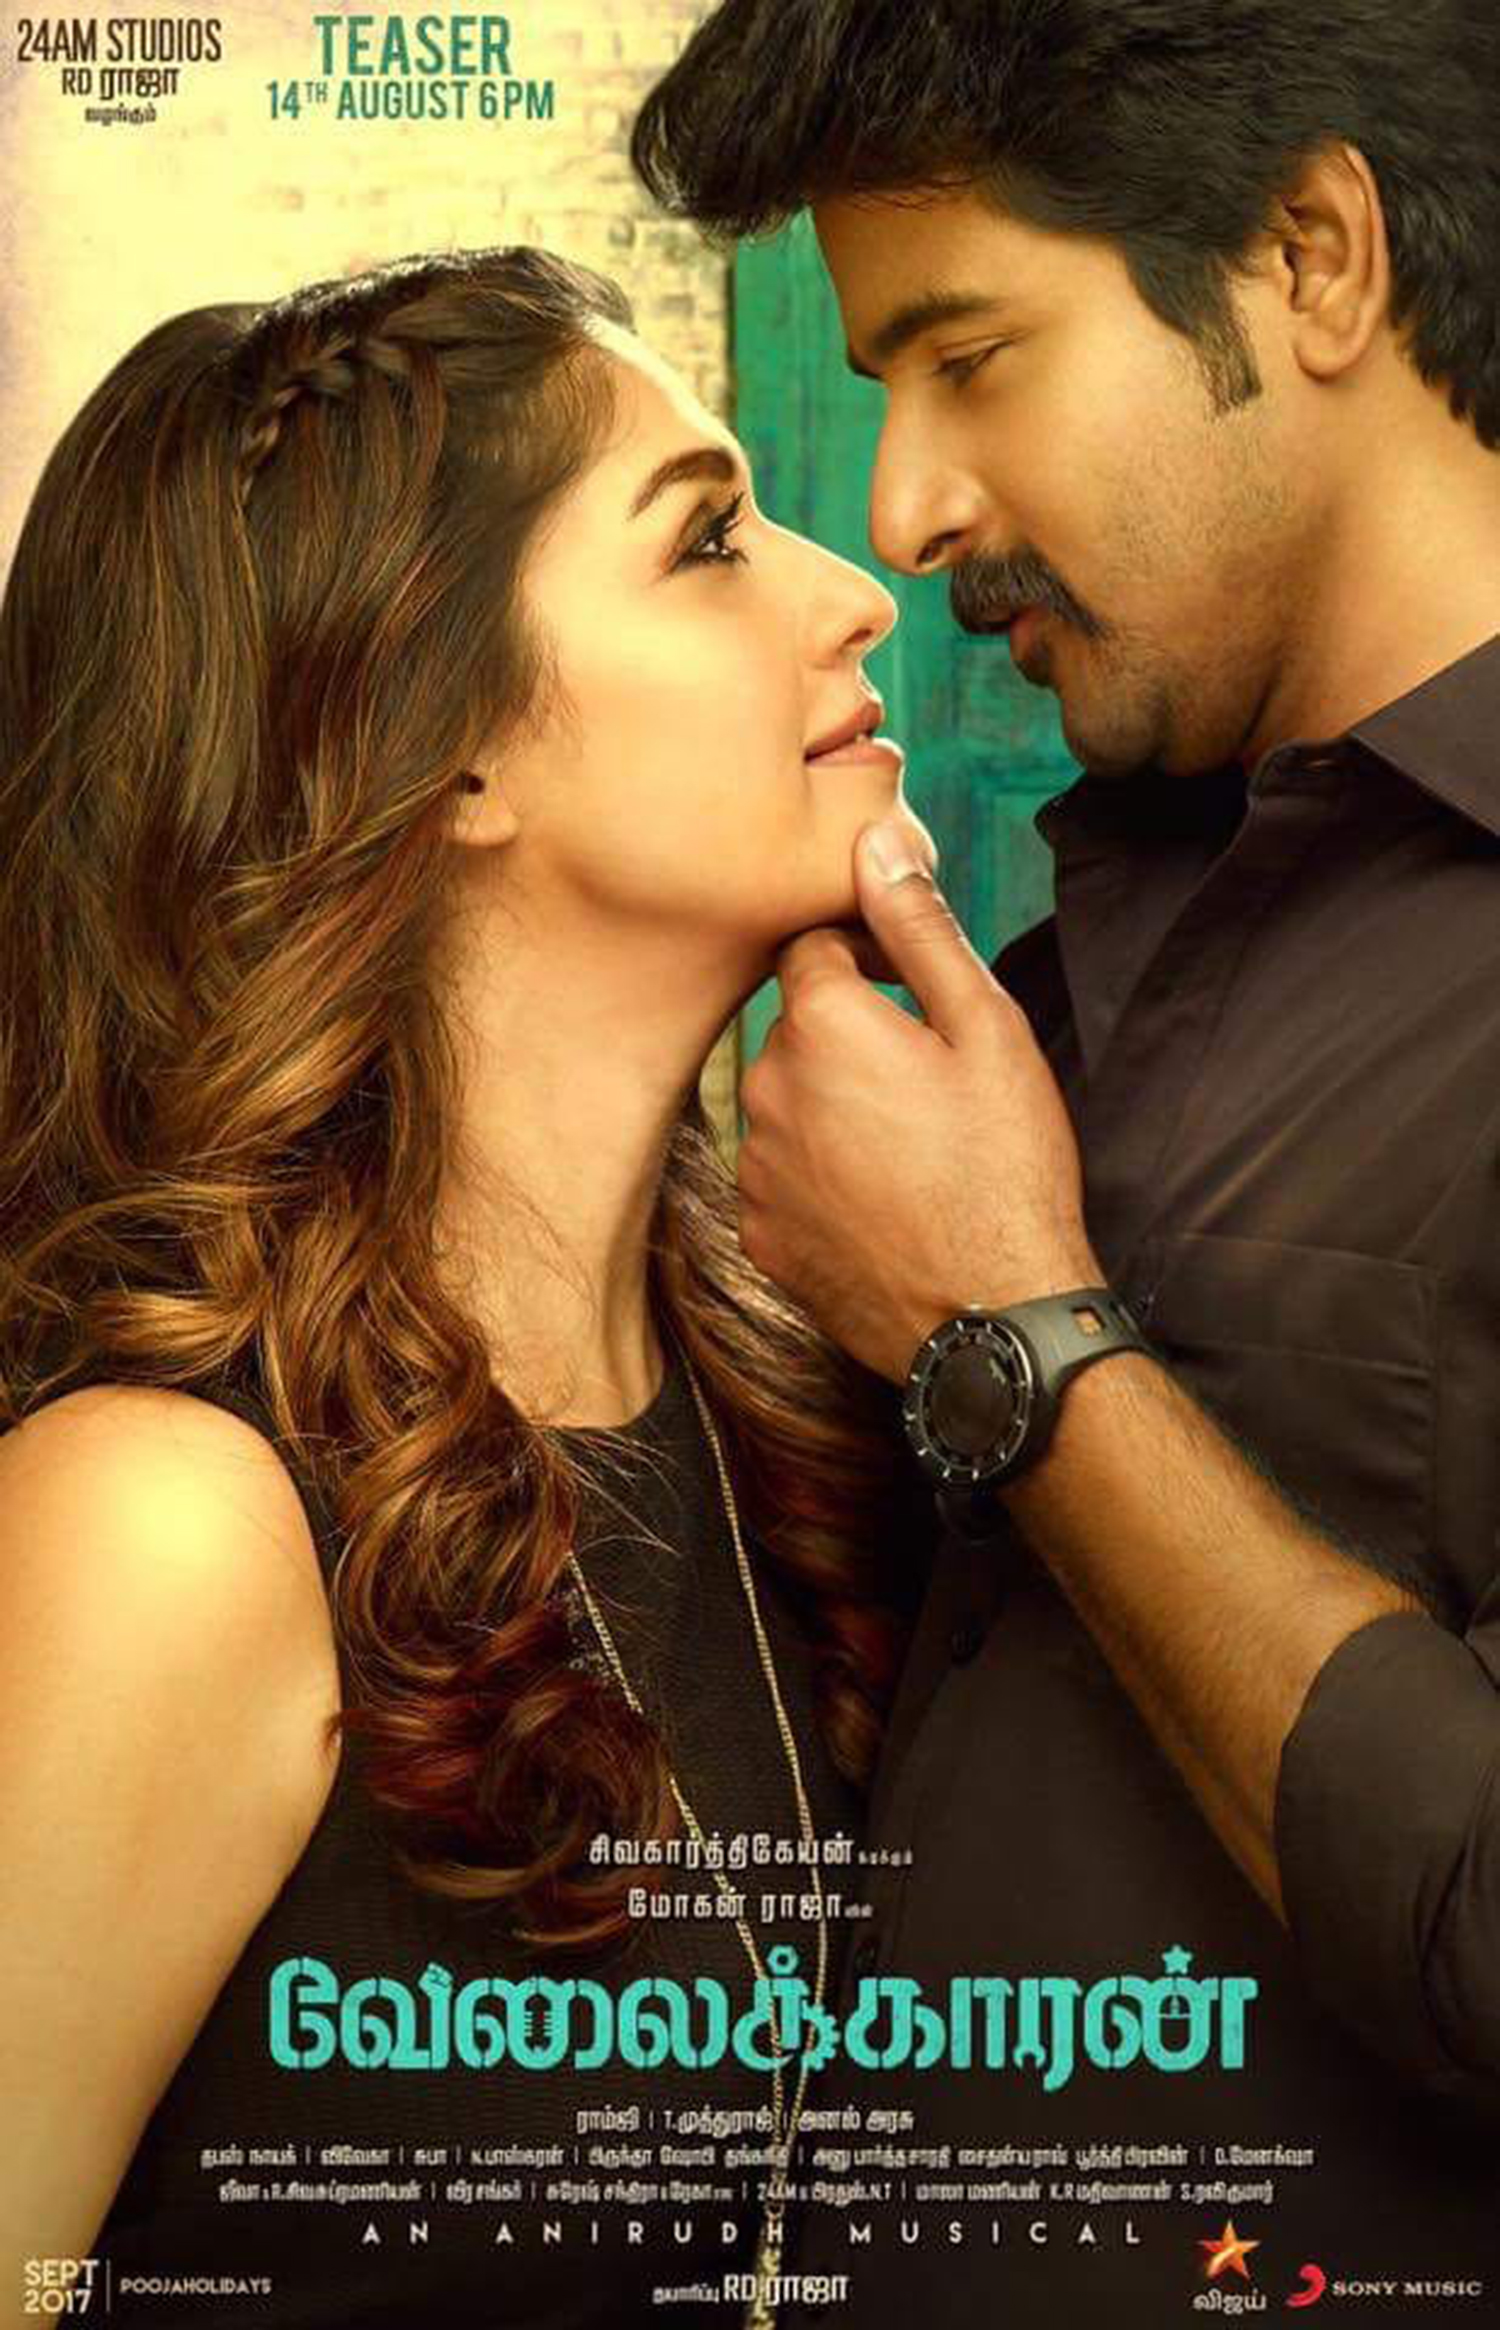 nayanthara, nayanthara new movie, fahadh faasil, fahadh faasil new movie, sivakarthikeyan, sivakarthikeyan new movie, sivakarthikeyan nayanthara, vellaikaran posters, mohan raja, mohan raja new movie,